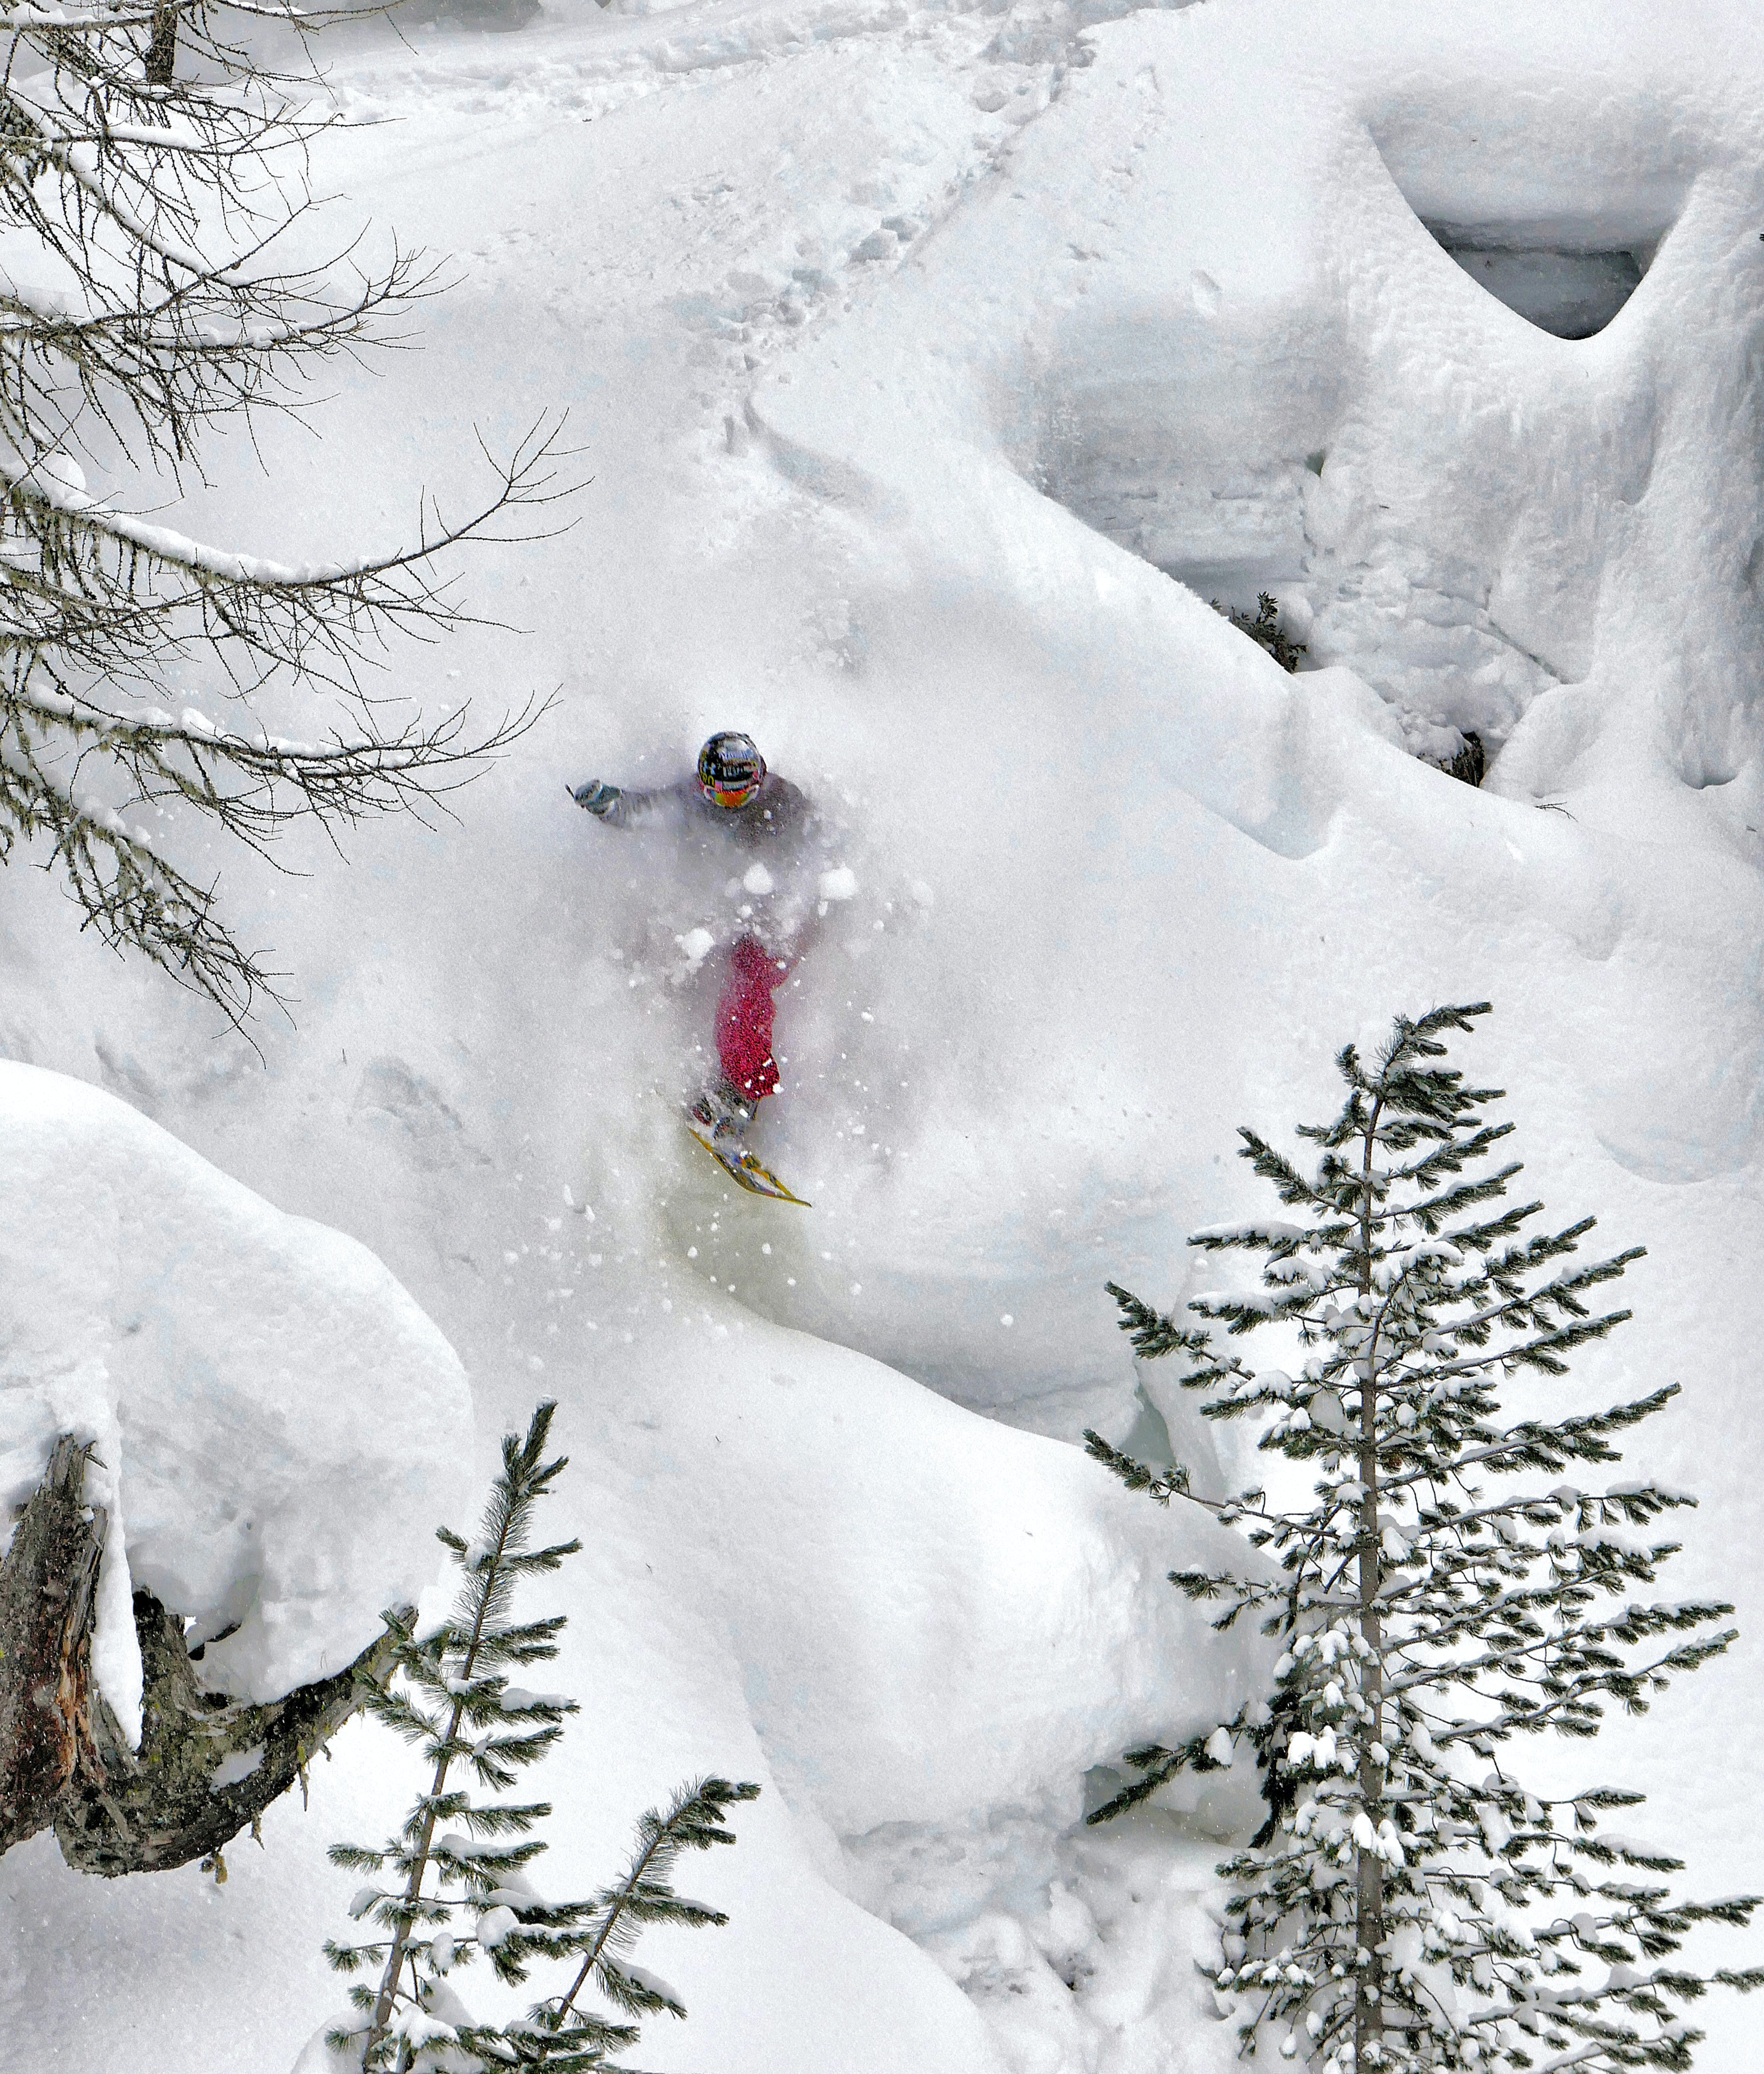 person snow skiing on snow coated mountain